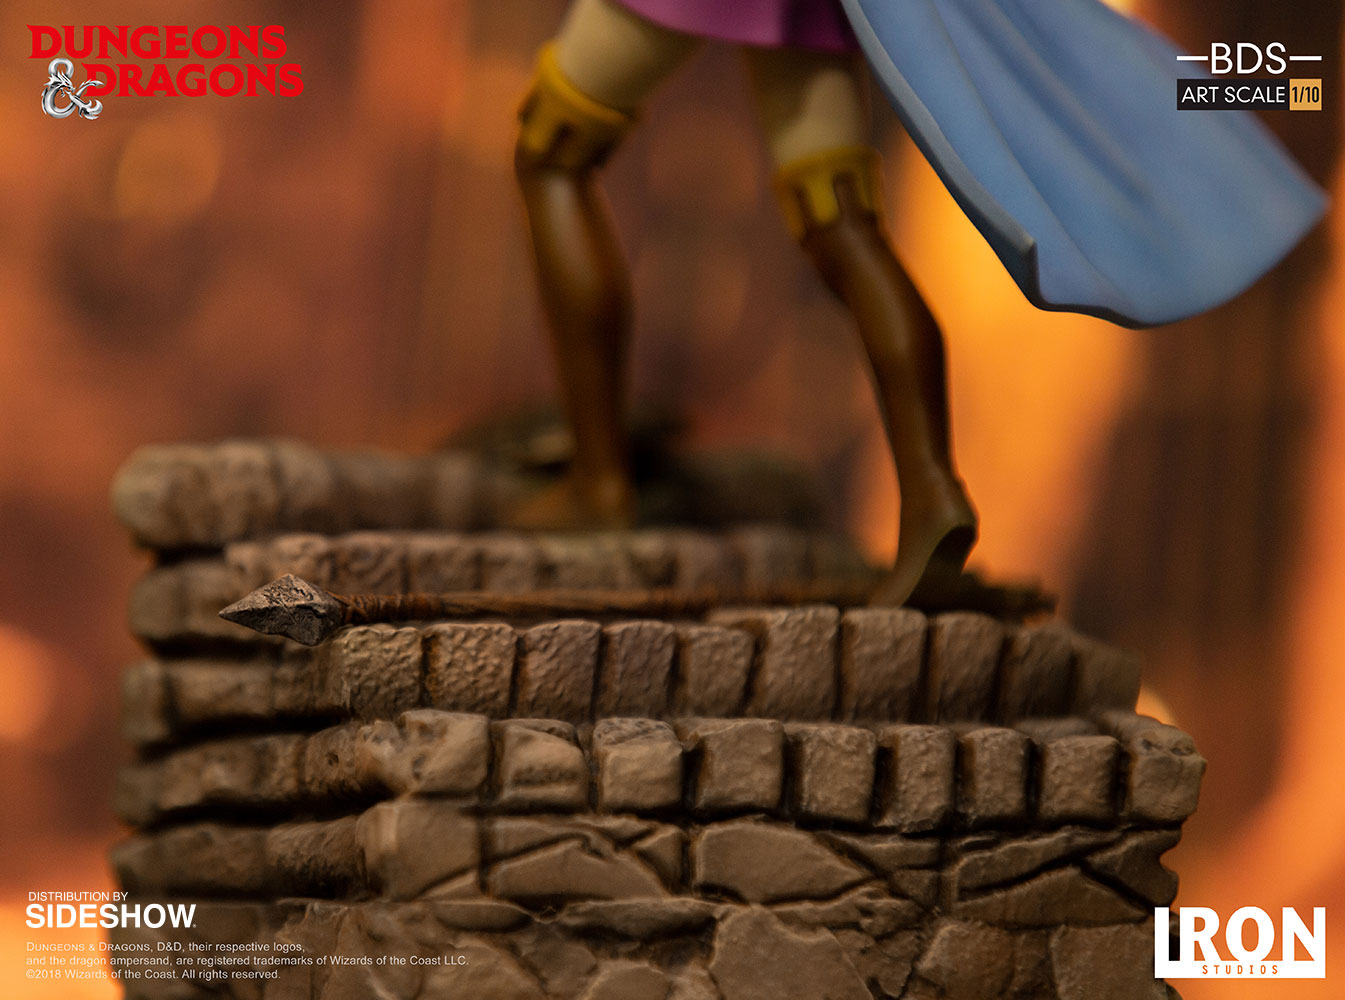 Dungeons and Dragons Sheila the Thief Statue by Iron Studios